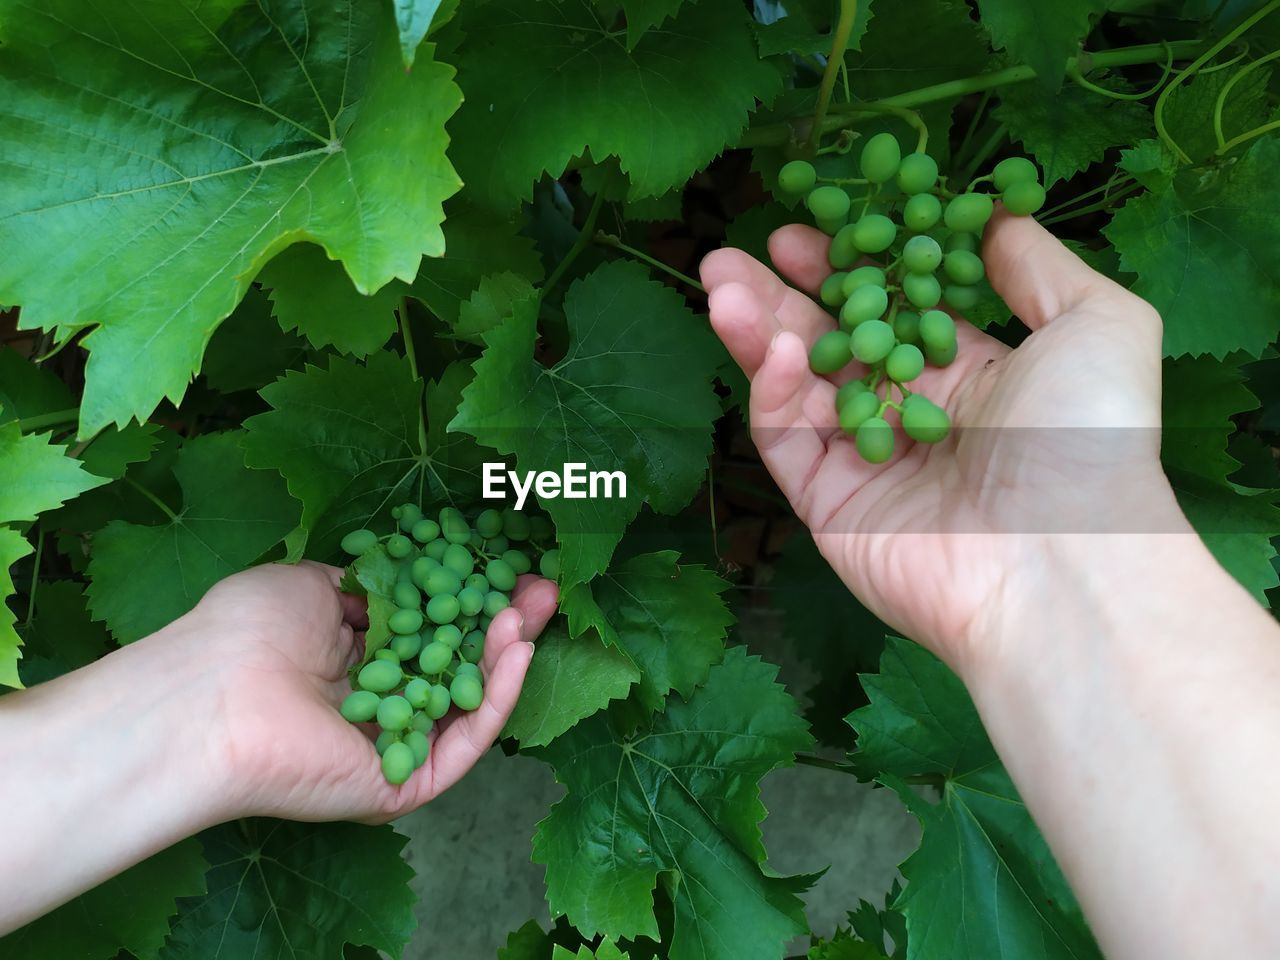 Cropped image of hands holding unripe grapes